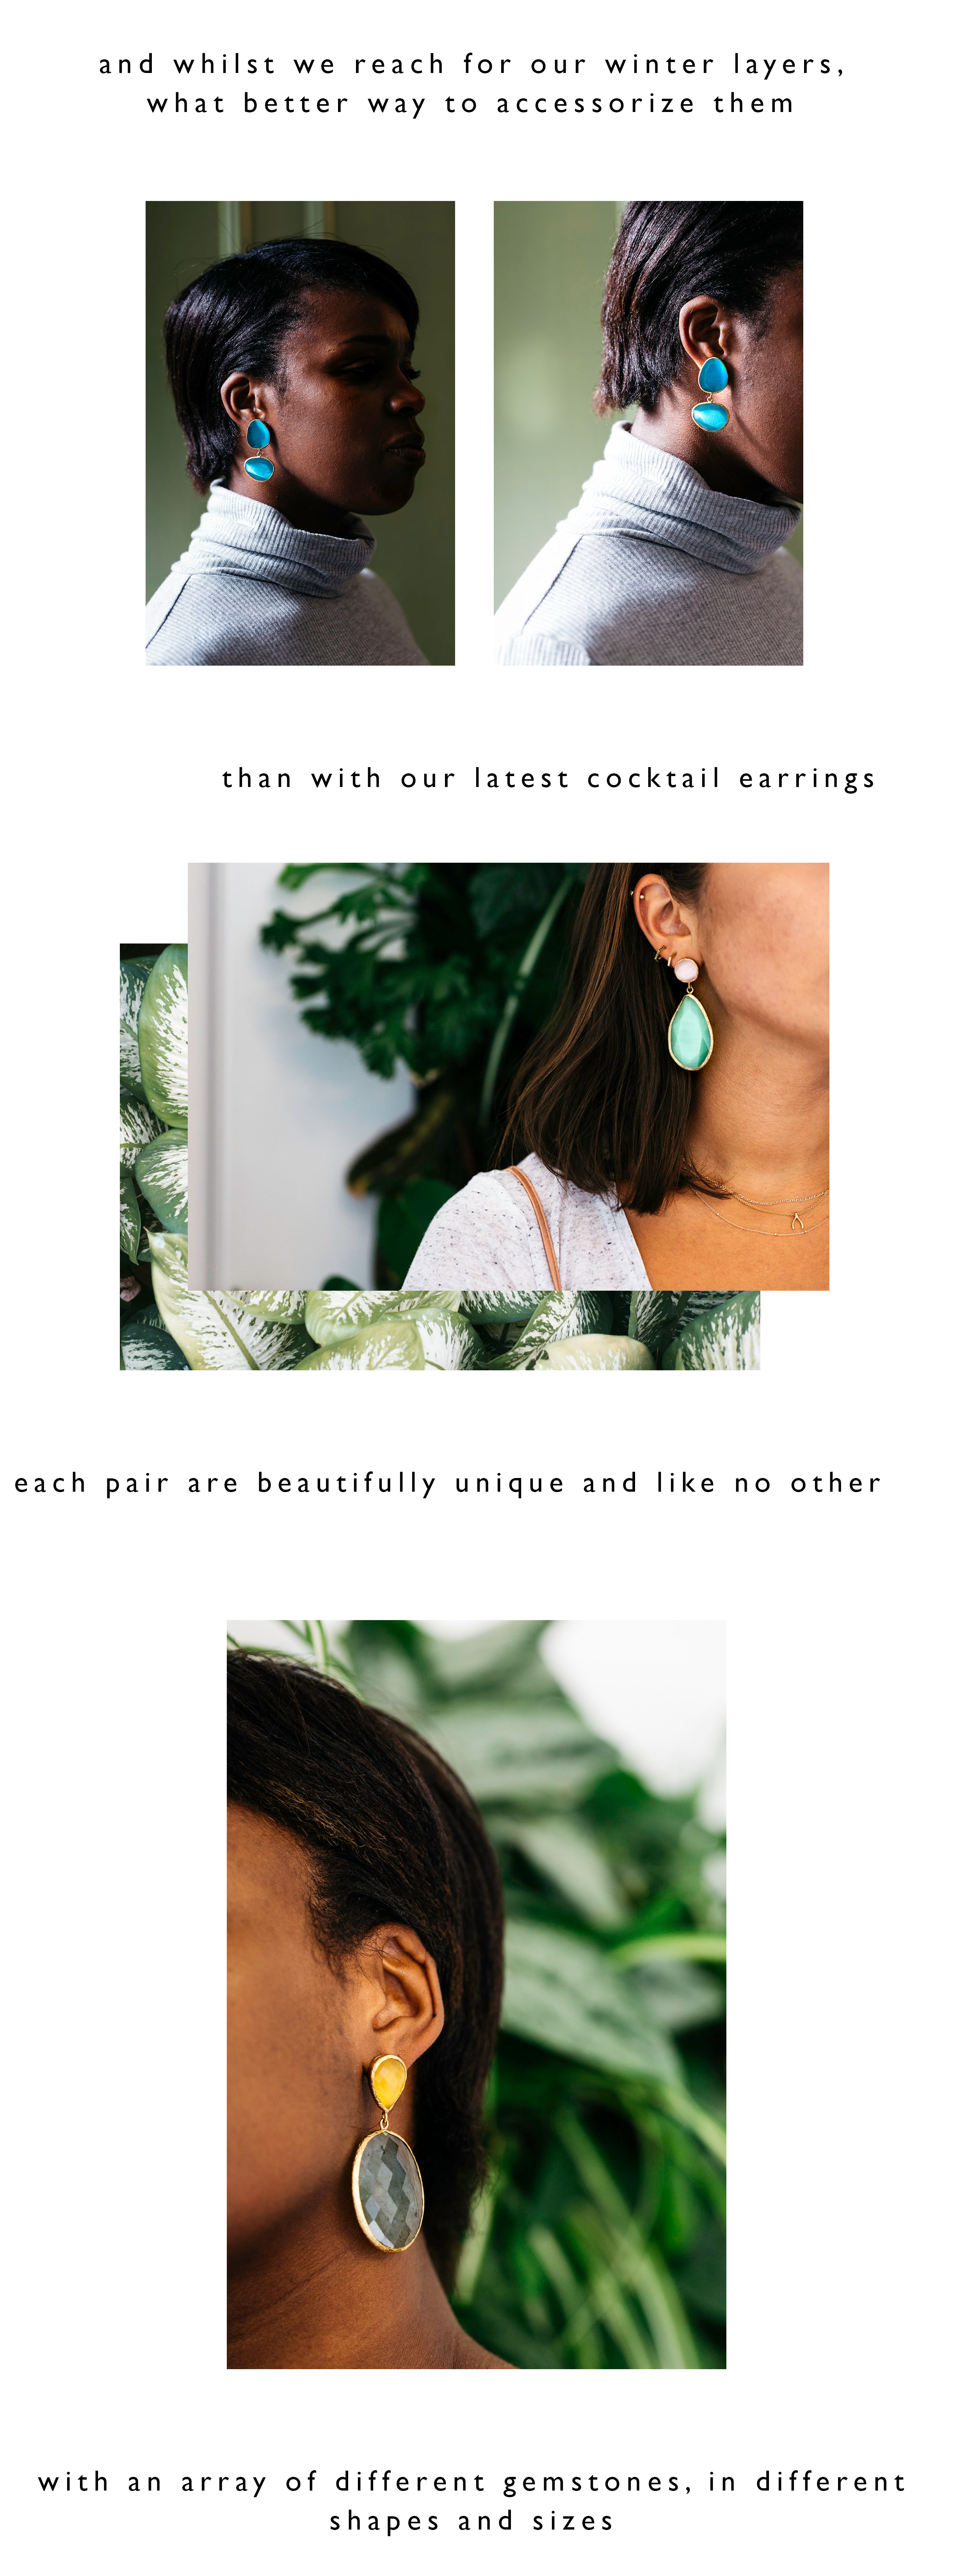 cocktail earrings page 2.png